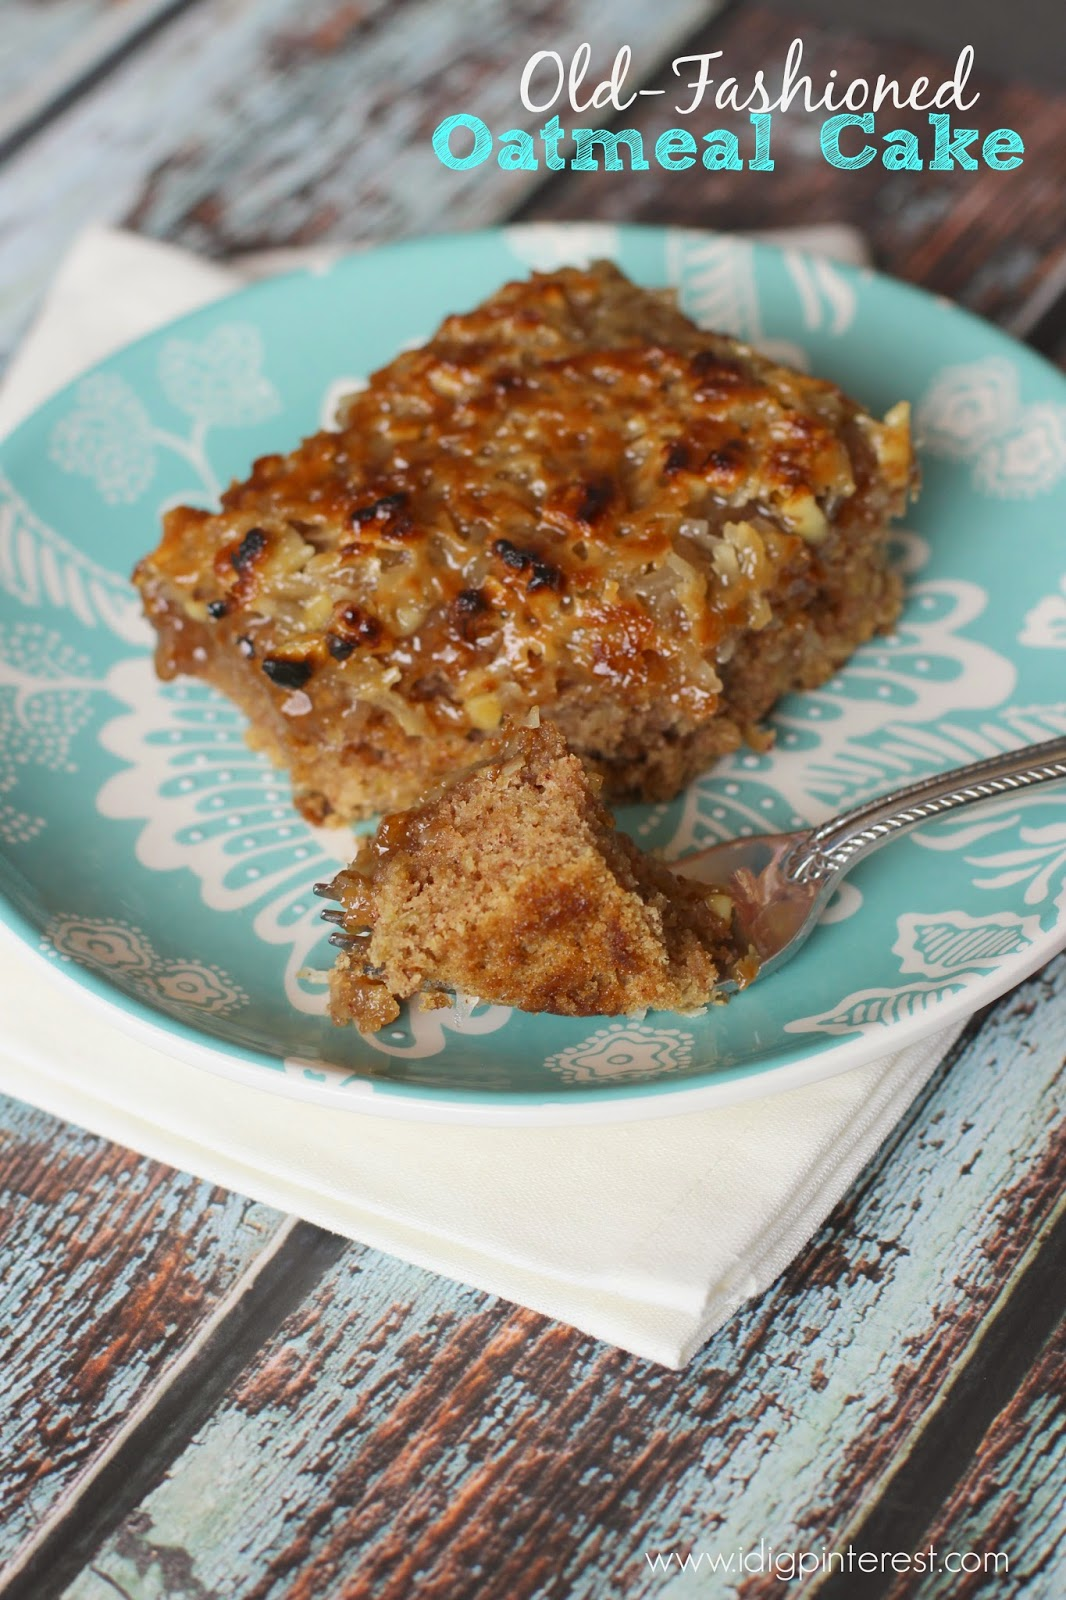 Old Fashioned Oatmeal Cake I Dig Pinterest